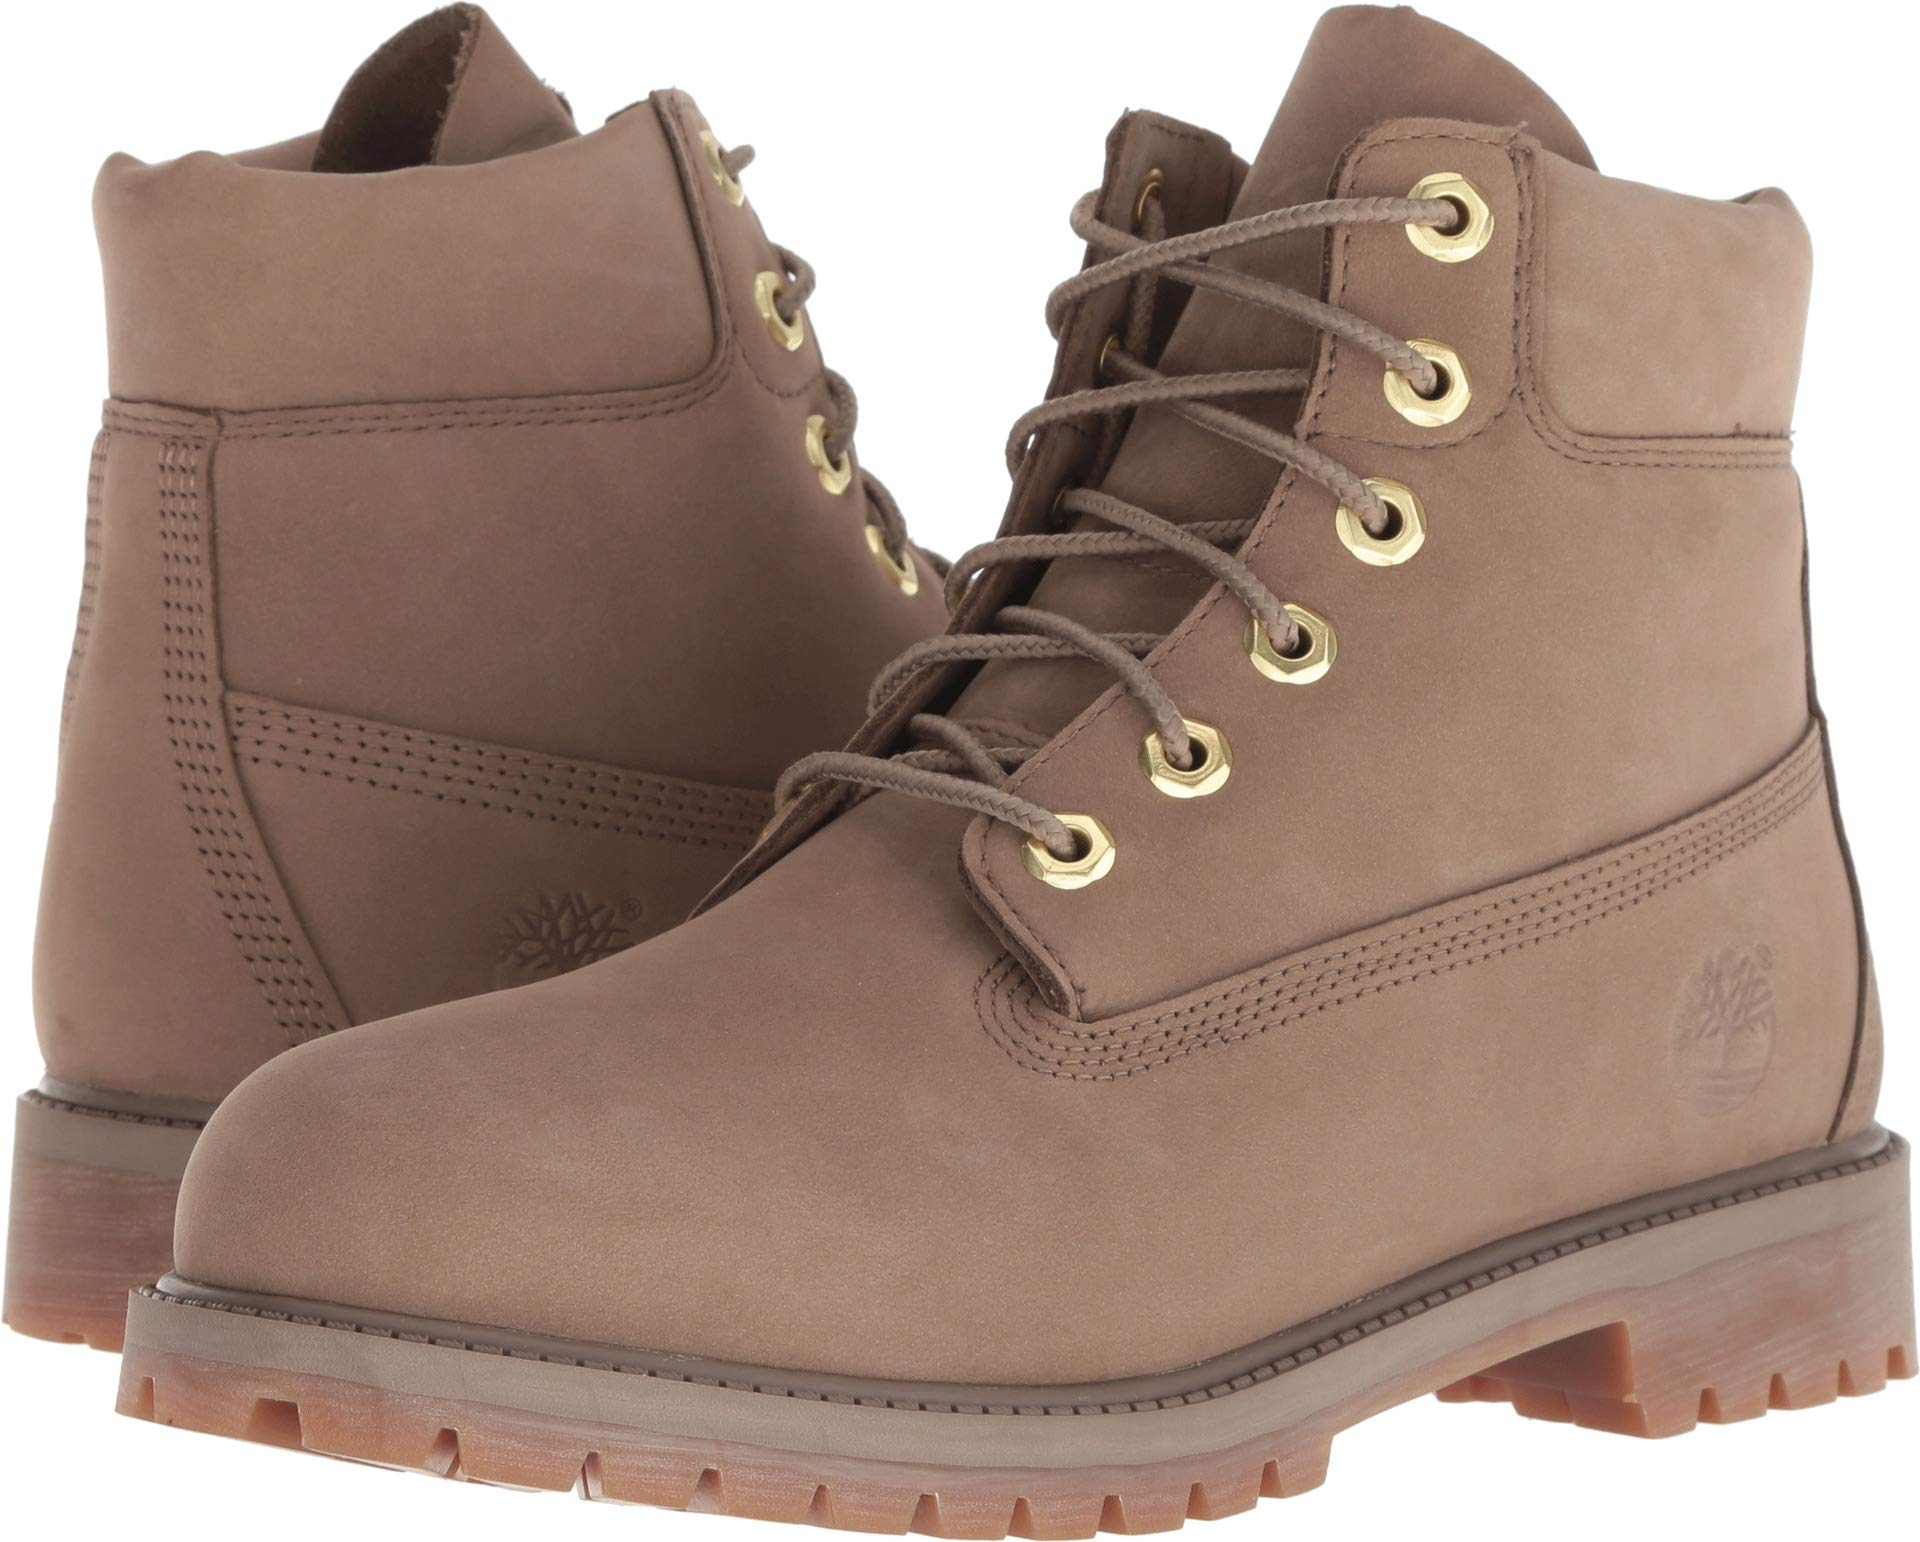 ab034c26ee80 Galleon - Timberland Kids Unisex 6